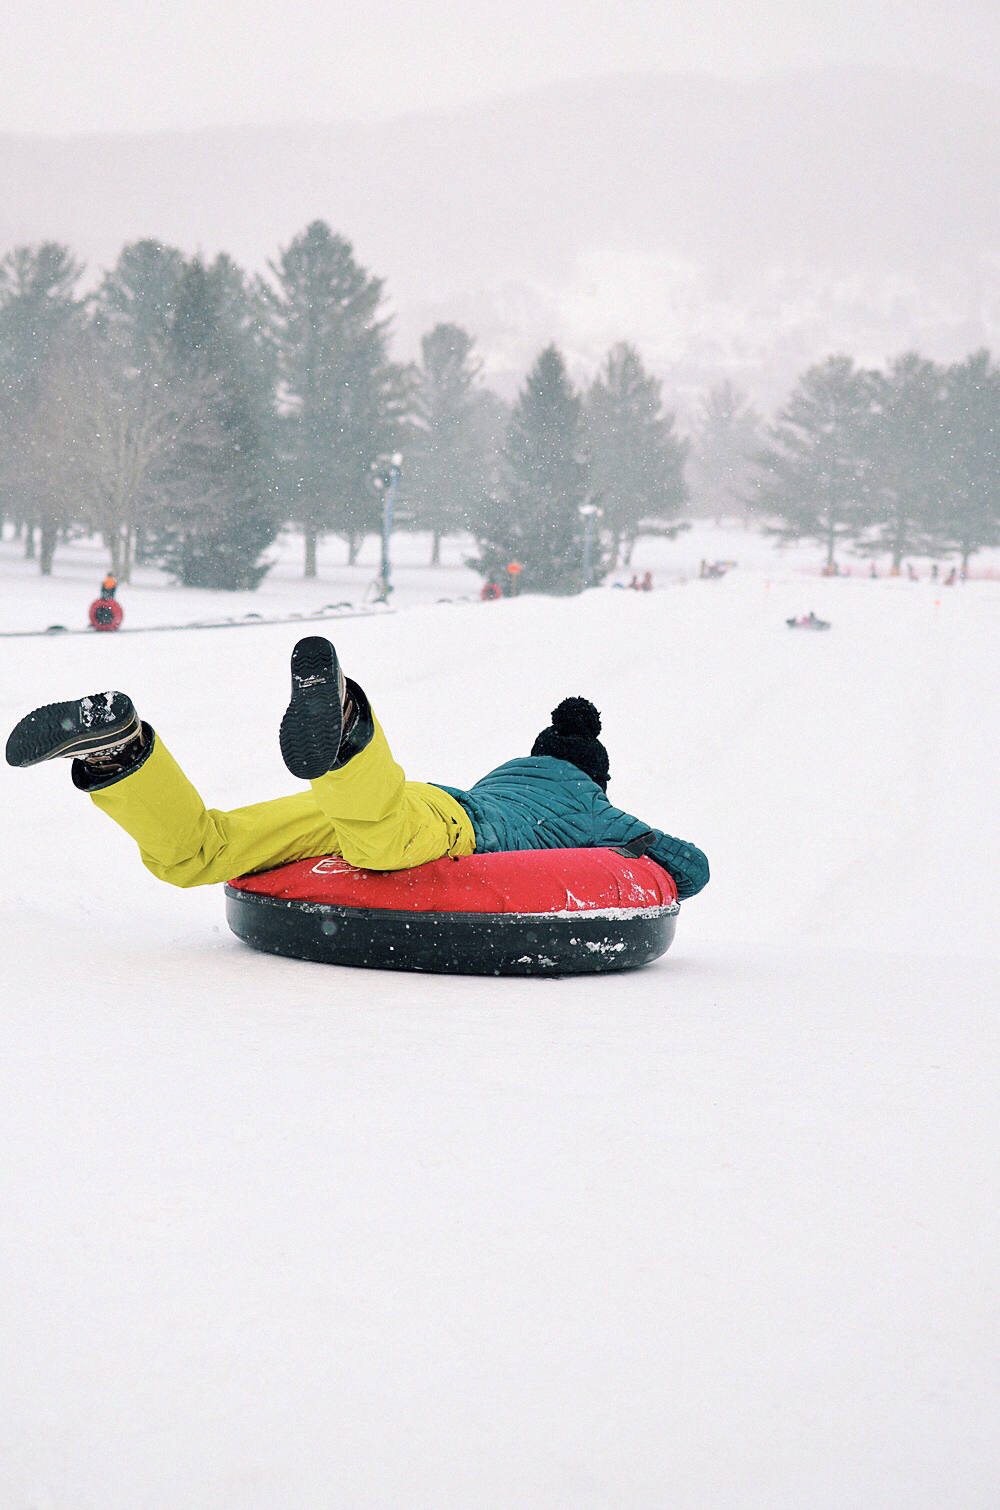 Snow tubing in North Carolina